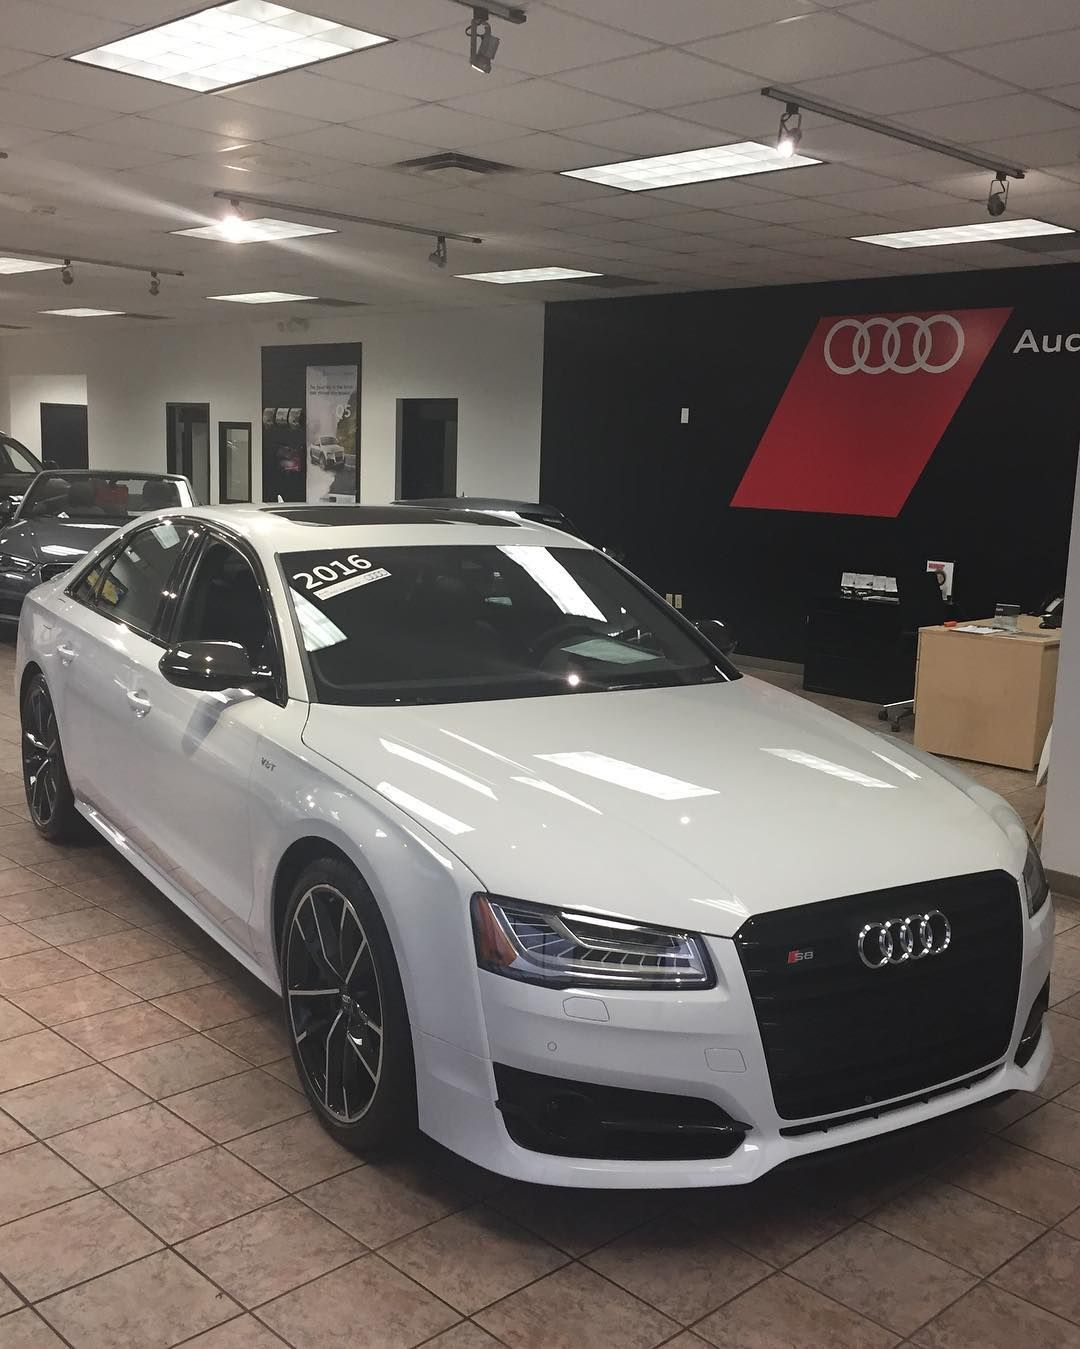 New To The Showroom A Certified Pre-Owned 2016 Audi S8